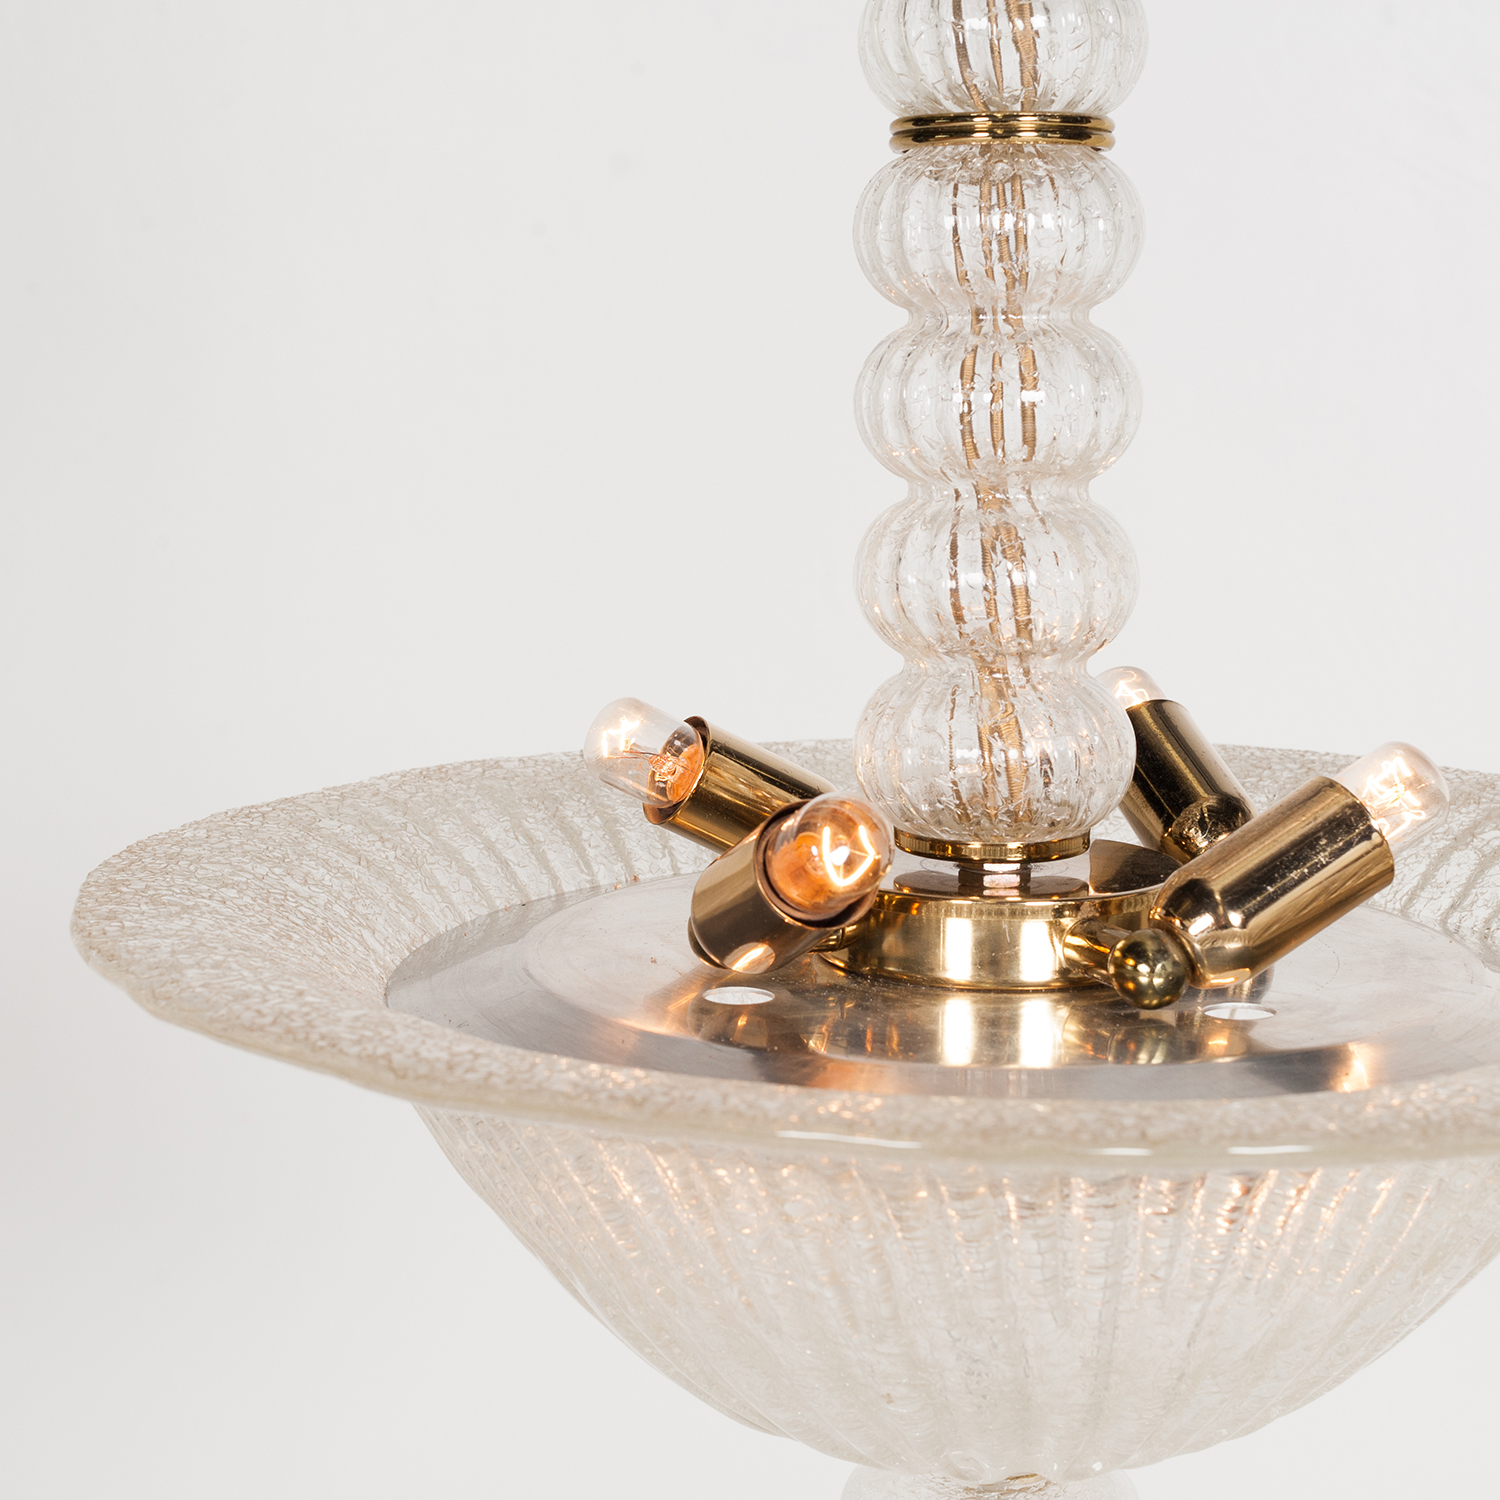 Murano Glass Pendant In The Style Of Barovier & Toso, 1950s, Italy 87